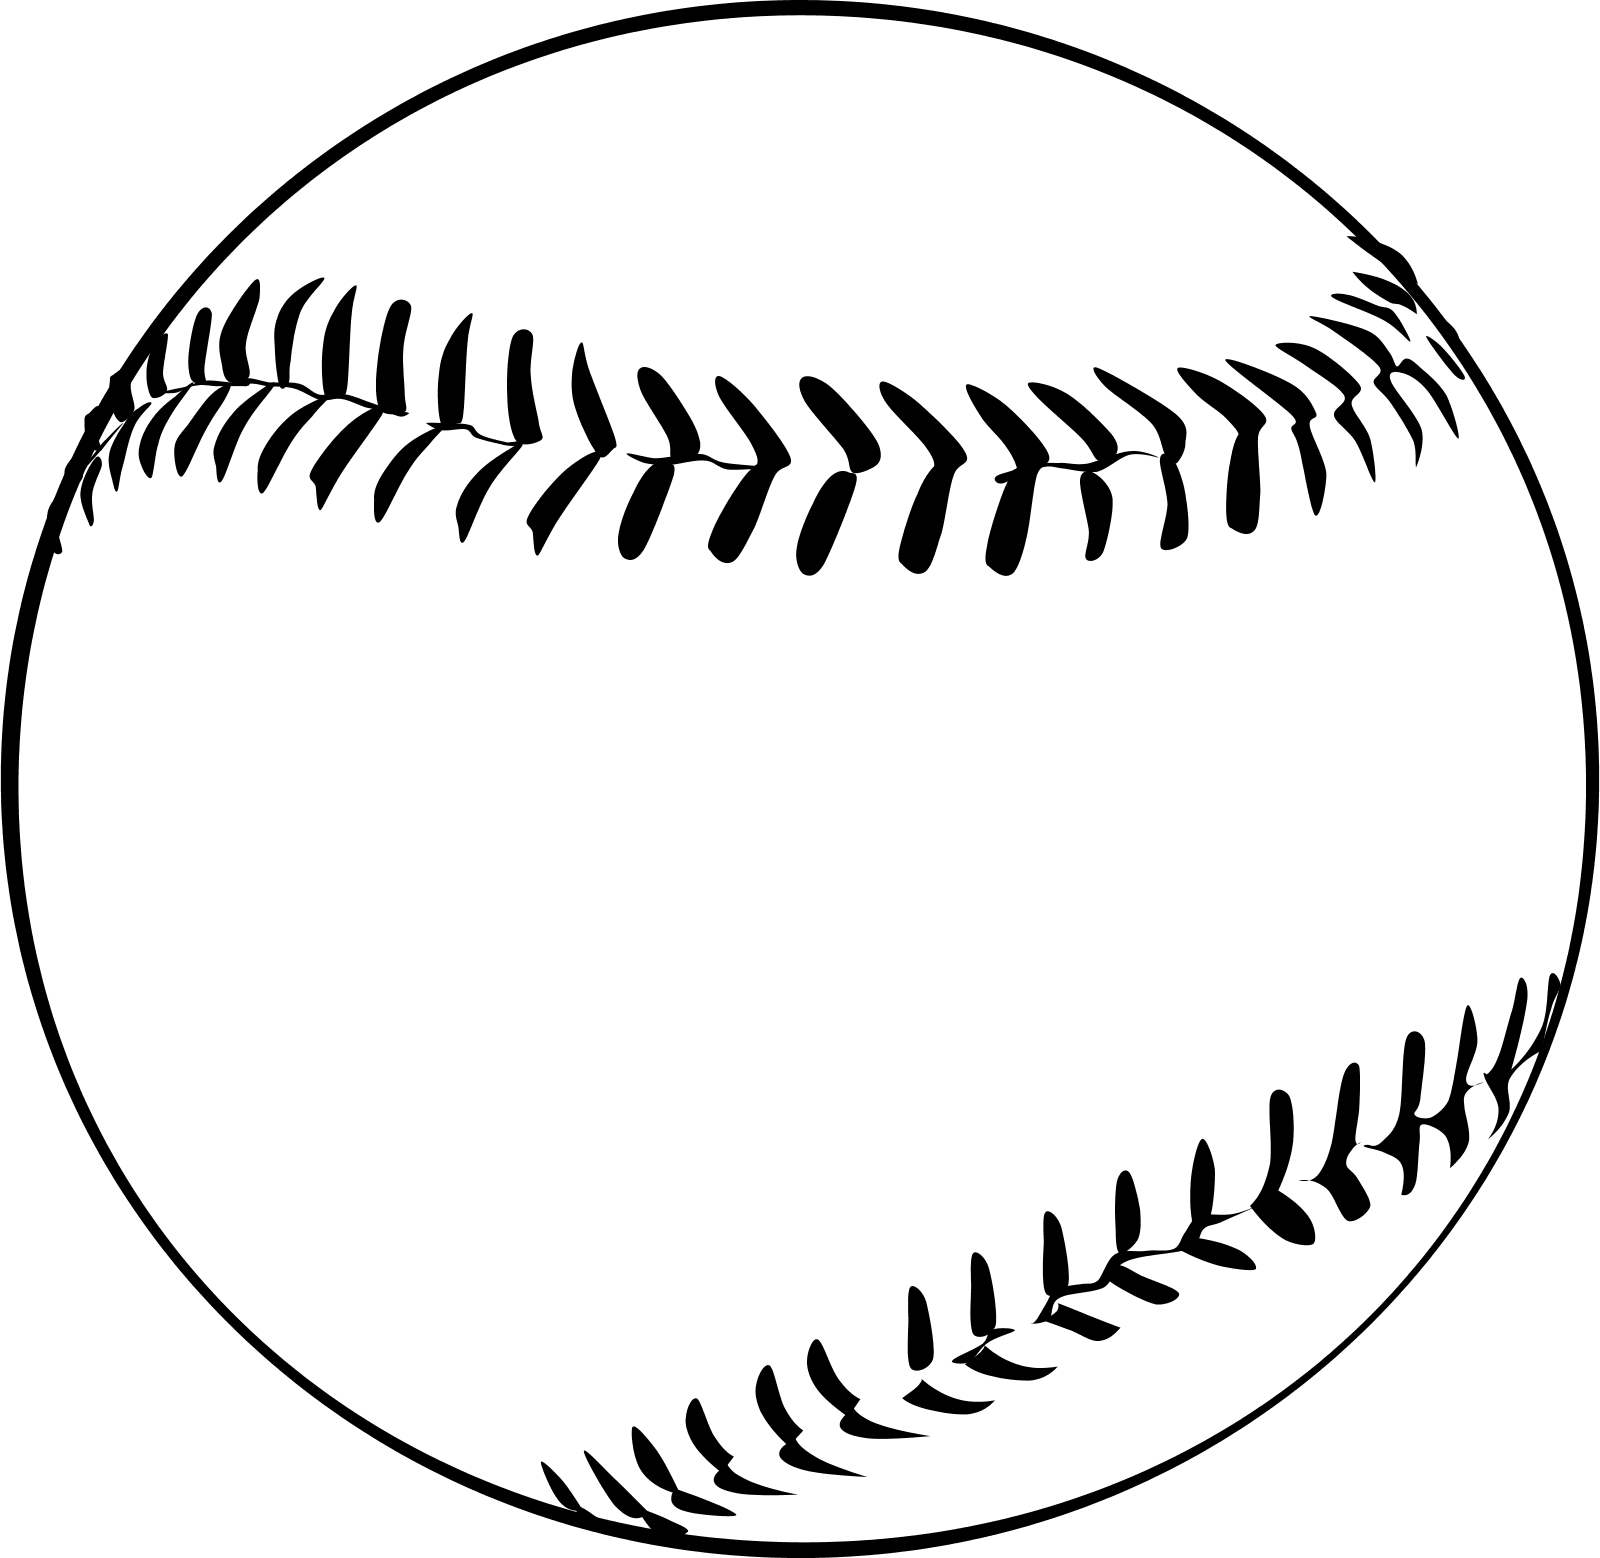 White Baseball Clipart #1 | Clipart Panda - Free Clipart Images